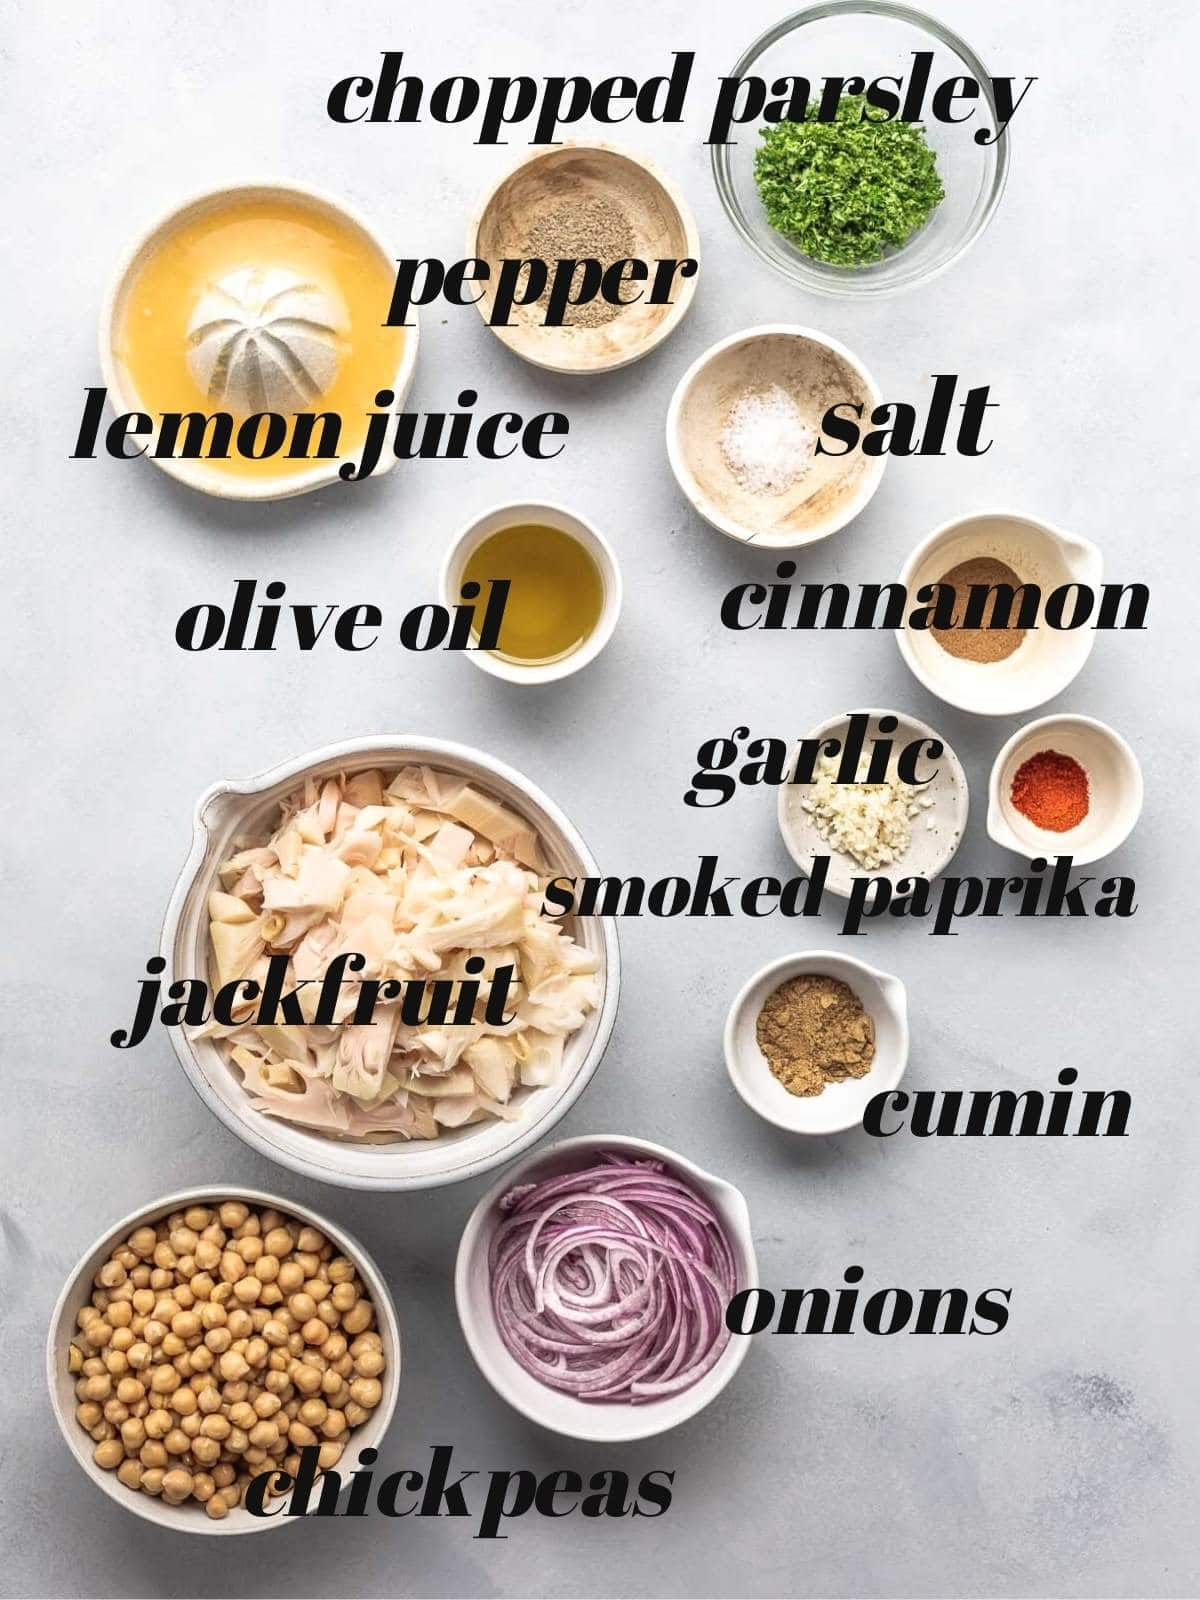 Labelled ingredients in bowls on a grey surface.